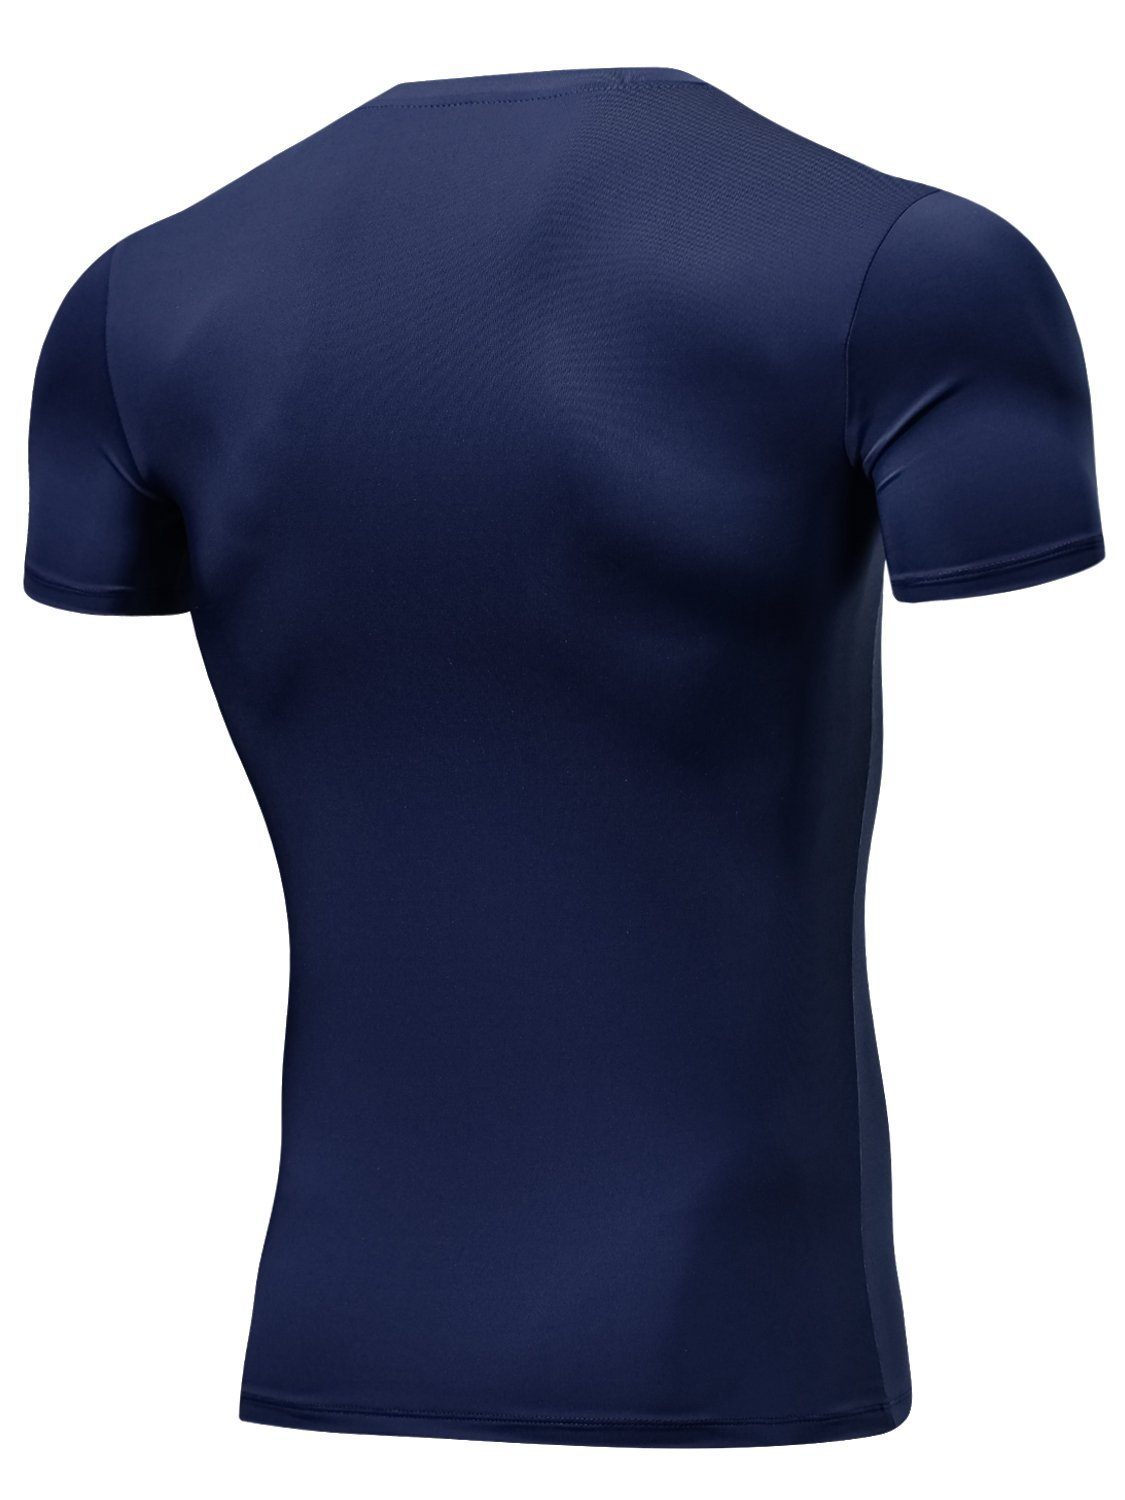 Lavento Mens Compression Shirts Cool Dry Short-Sleeve Workout Undershirts